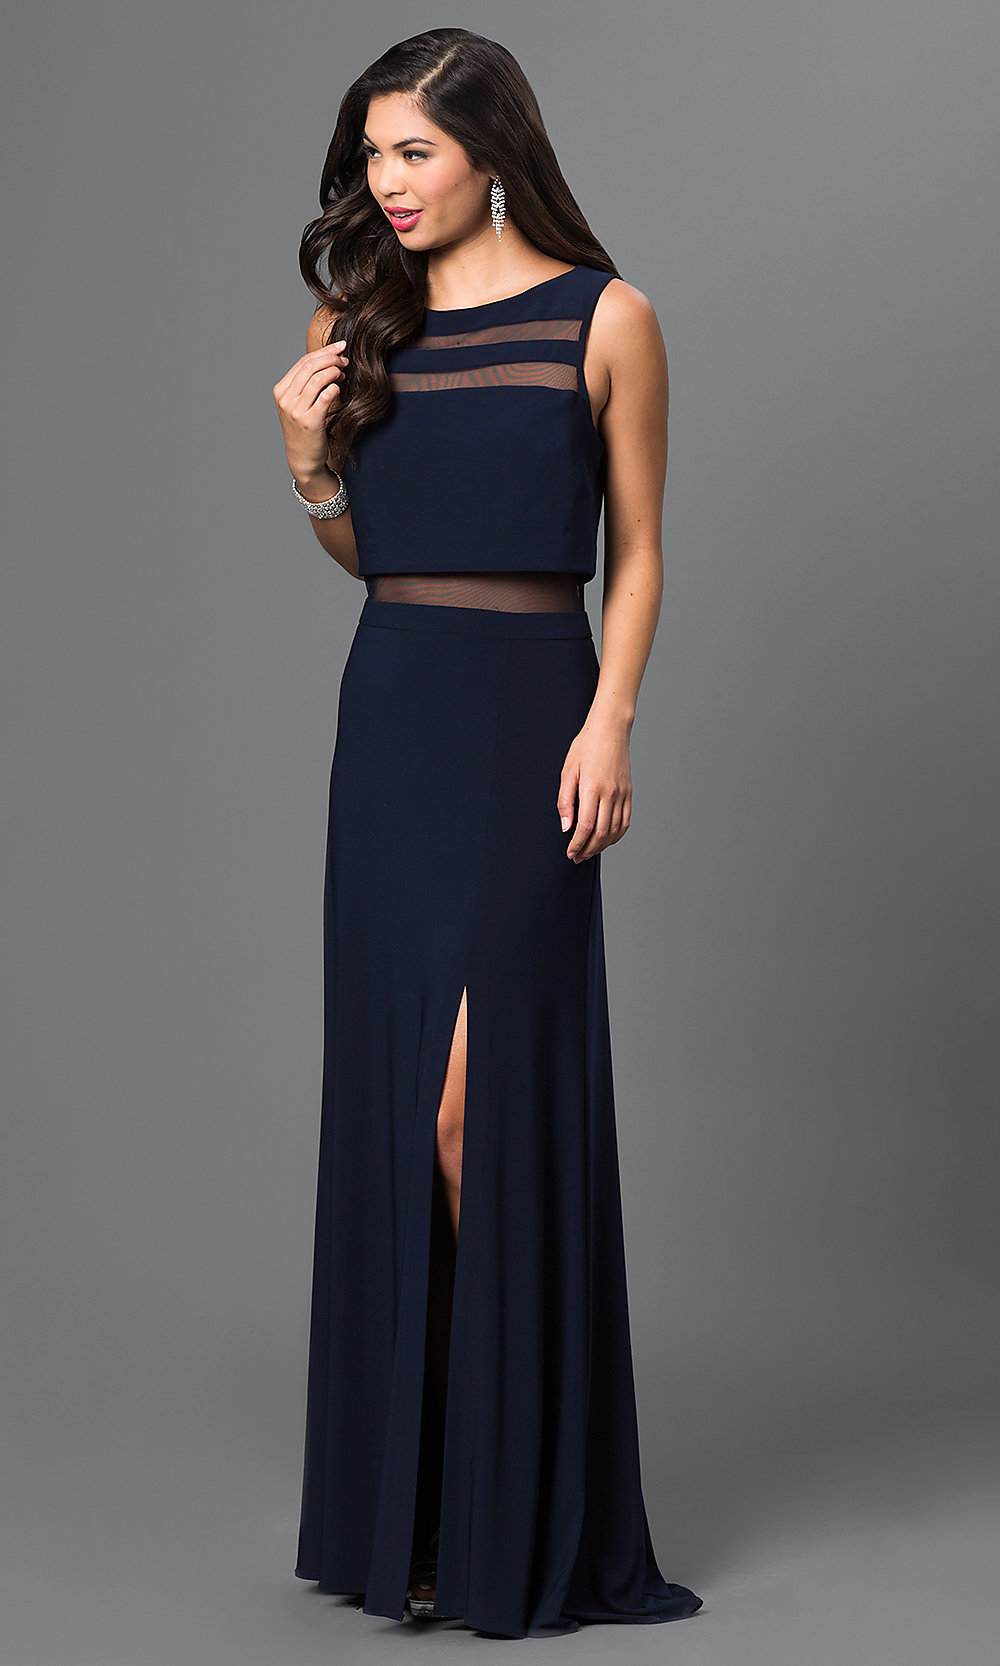 Cheap Mock Two-Piece Prom Dress in Navy - PromGirl